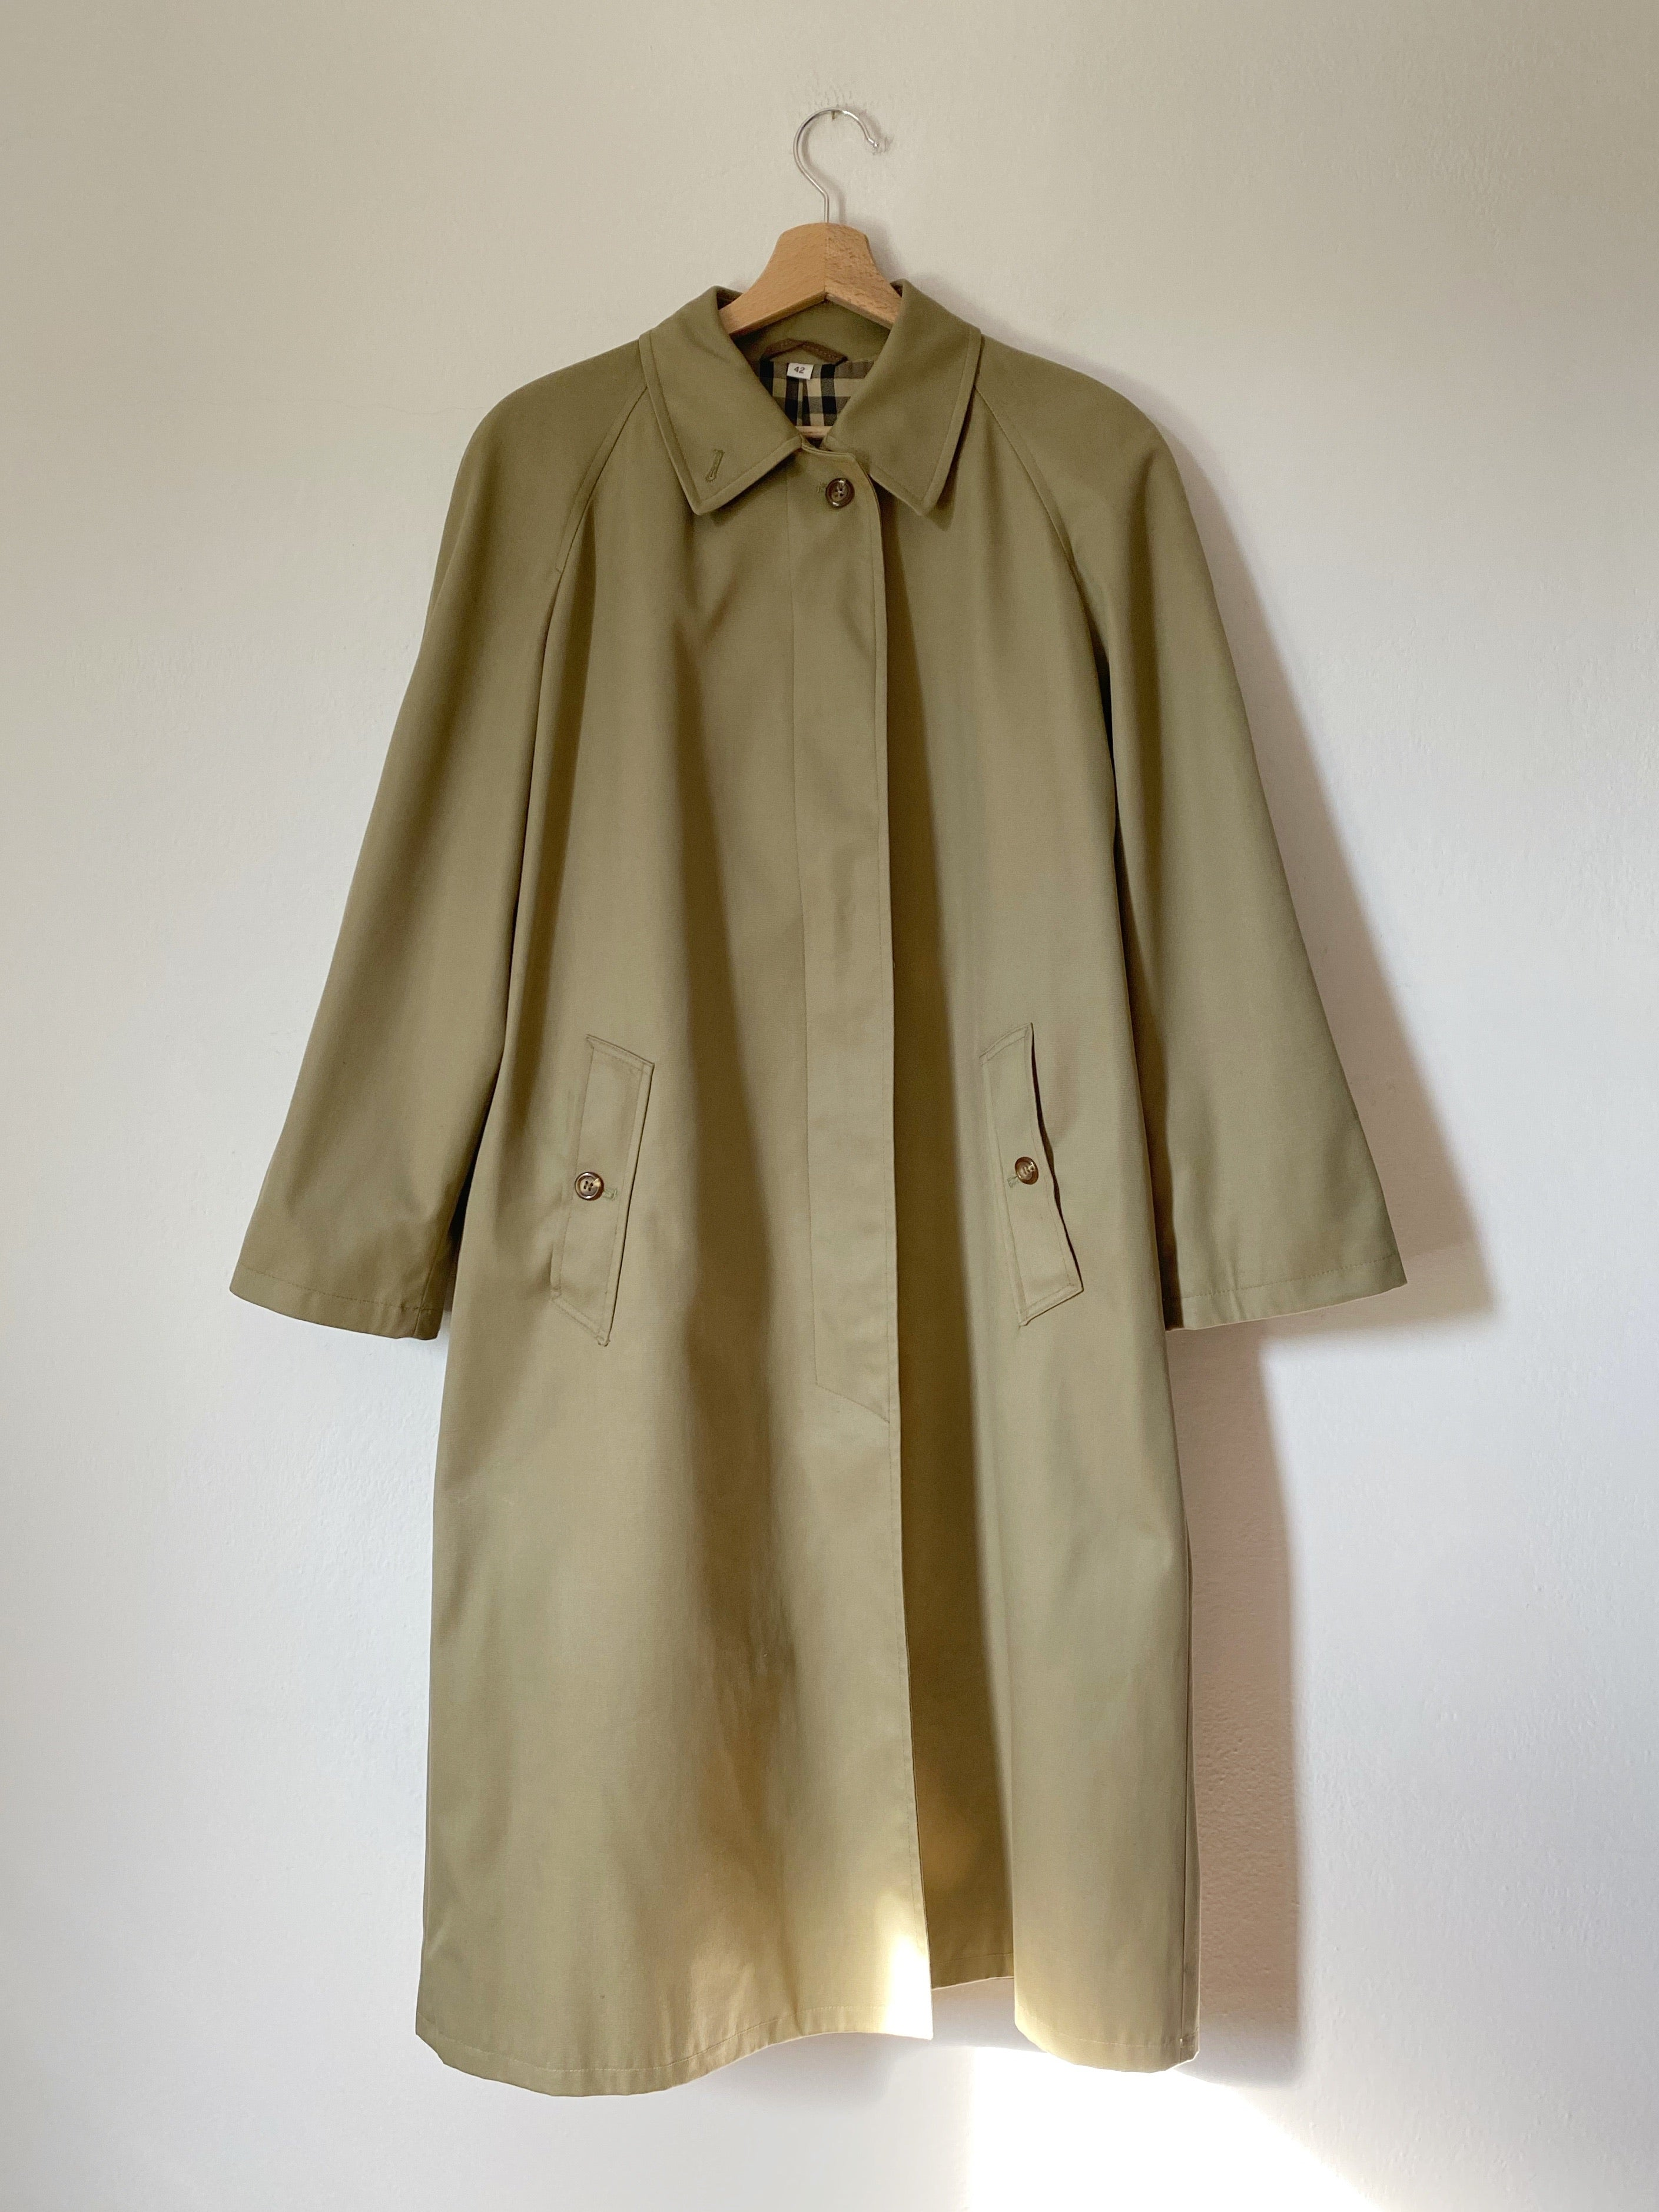 Vintage Made in Italy cotton blend classic trench